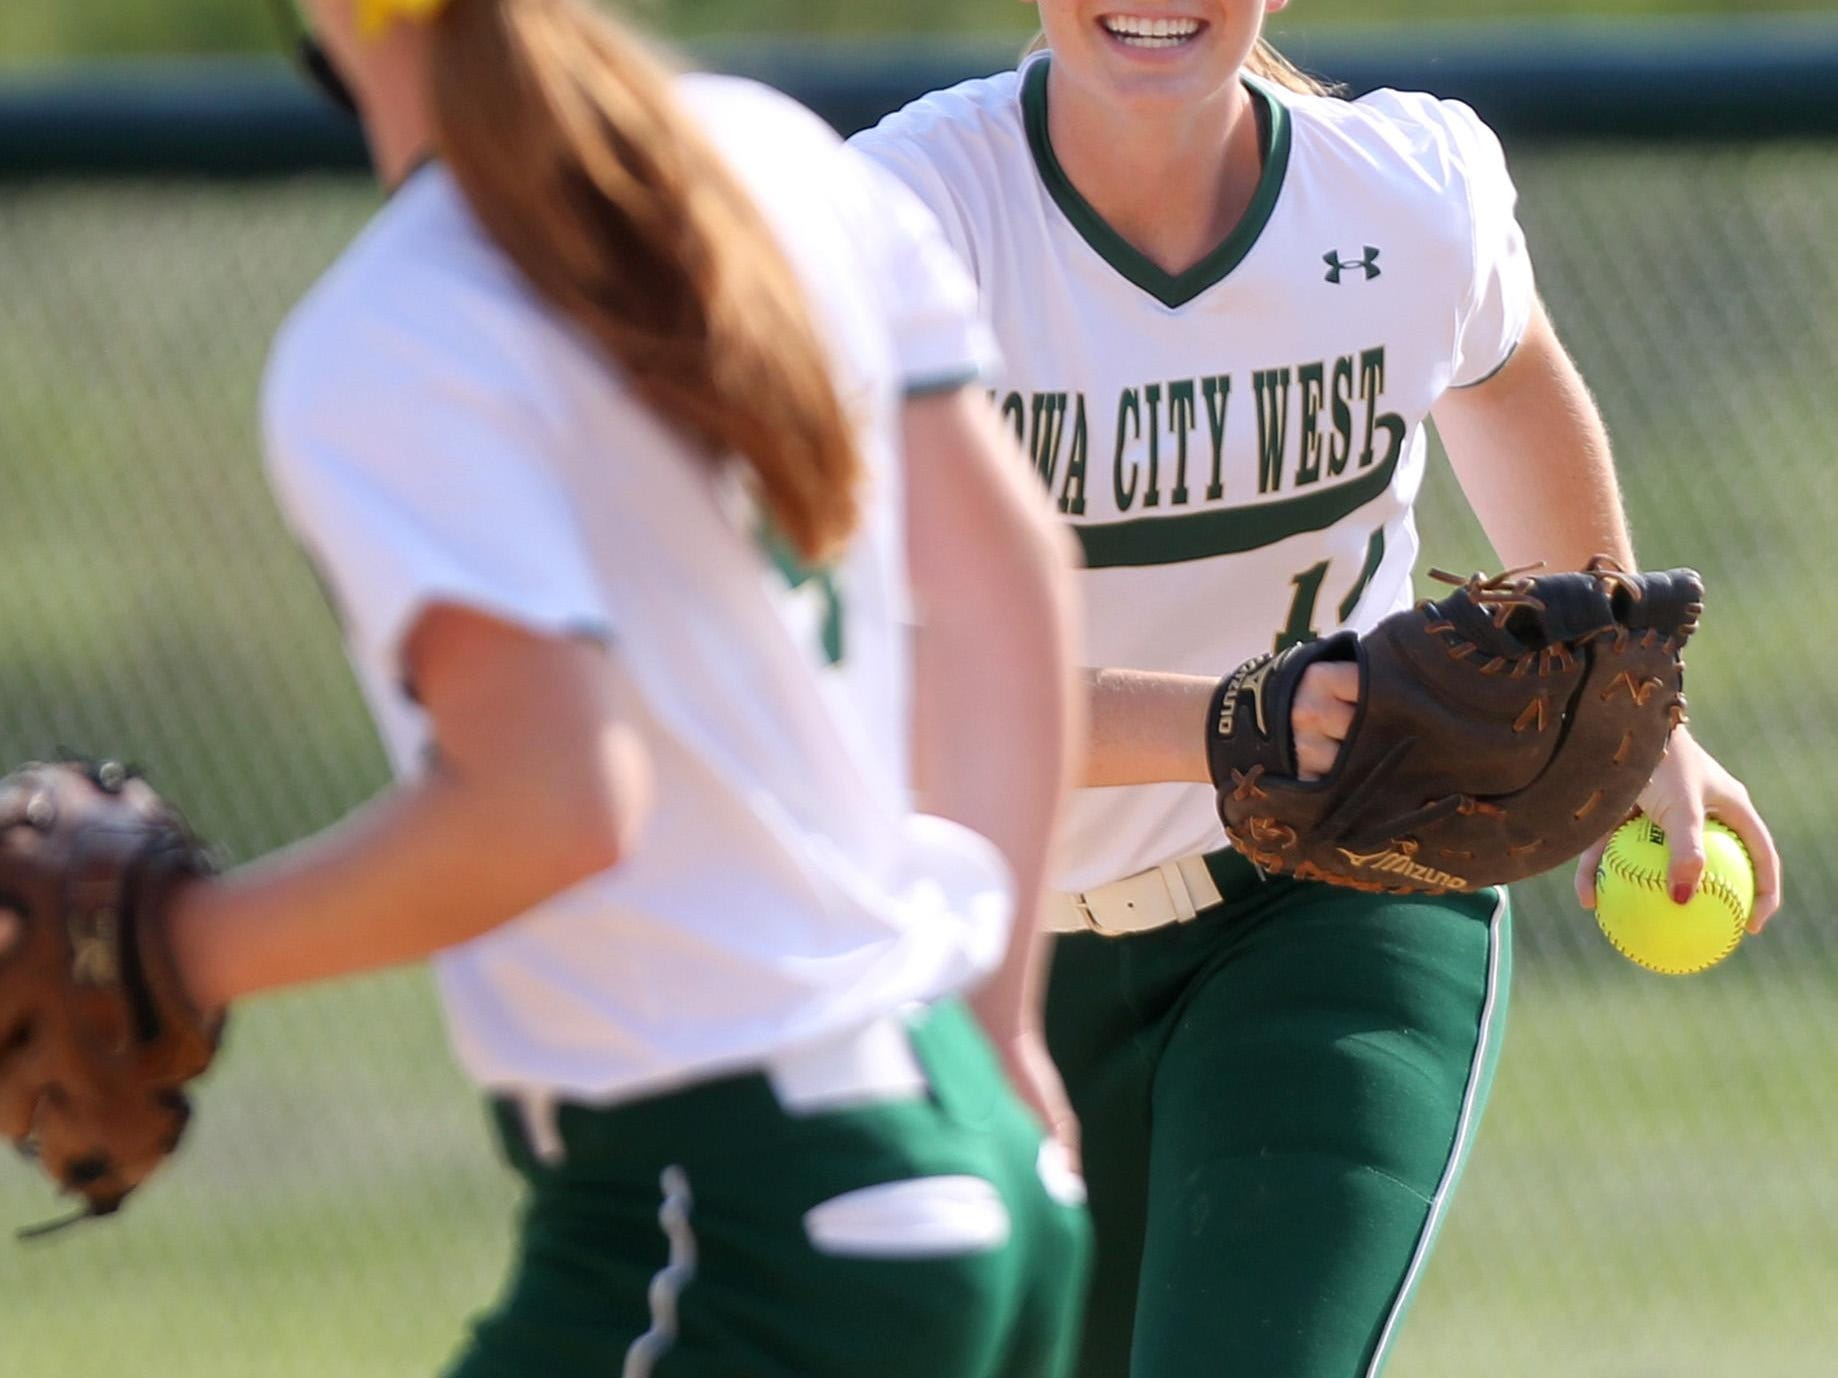 West High's Laynie Whitehead runs up to congratulate pitcher Jessie Harder on a strikeout during the Women of Troy's game against Linn-Mar on Thursday, July 9, 2015. David Scrivner / Iowa City Press-Citizen